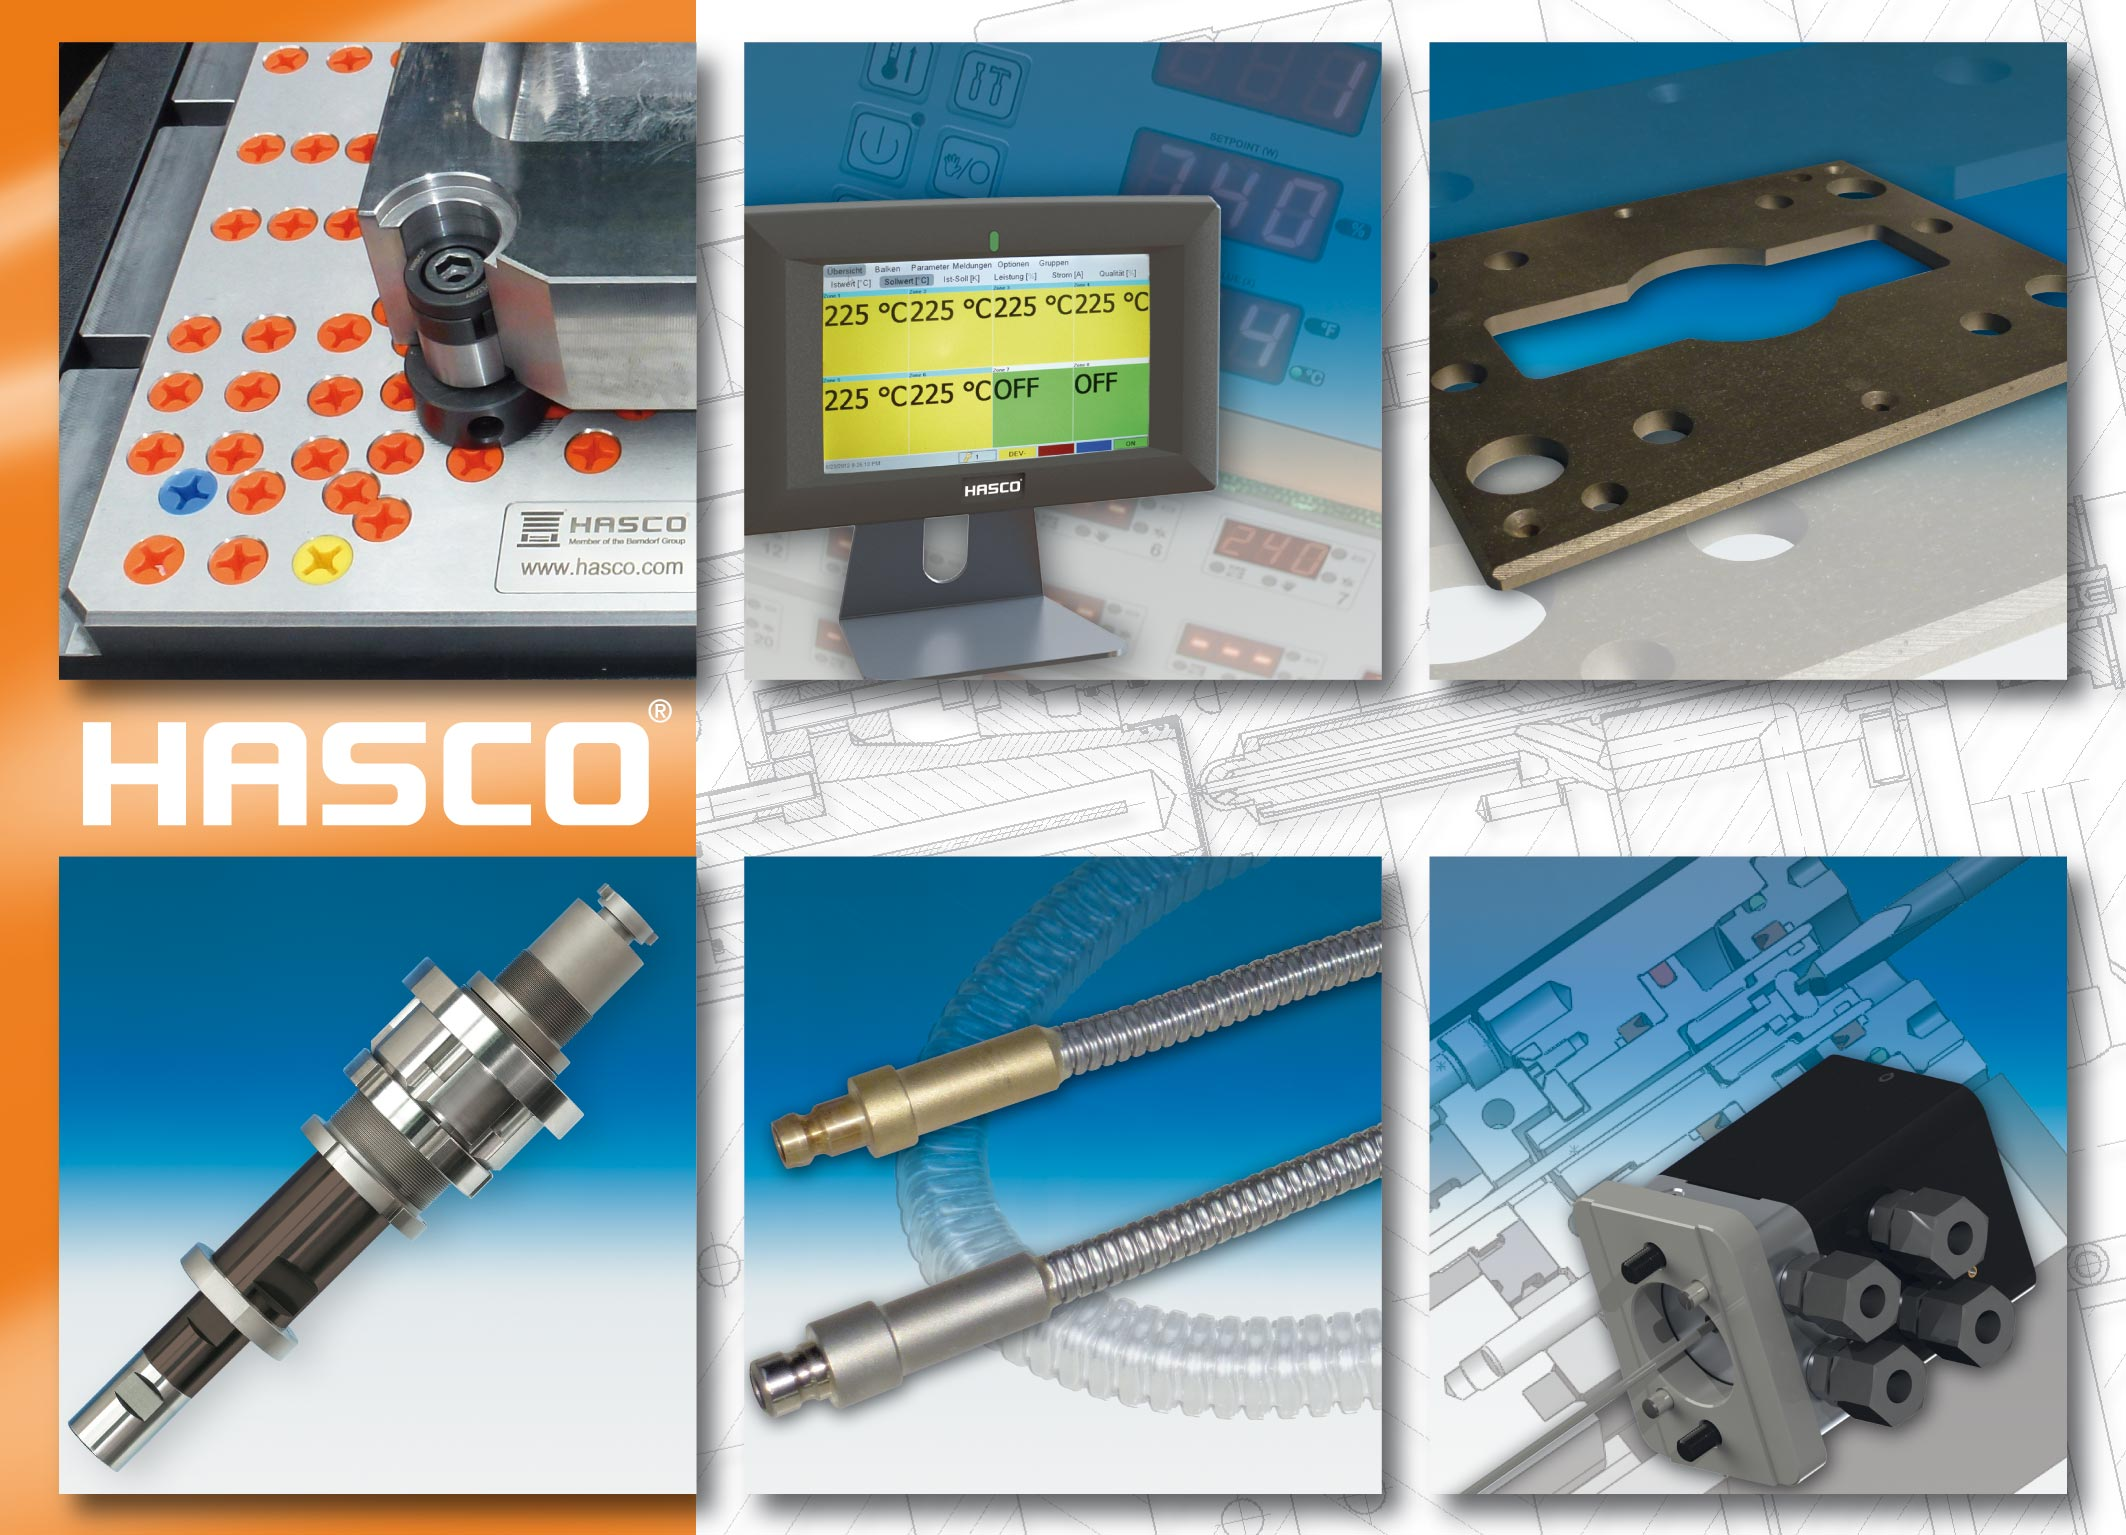 HASCO innovations at the wfb